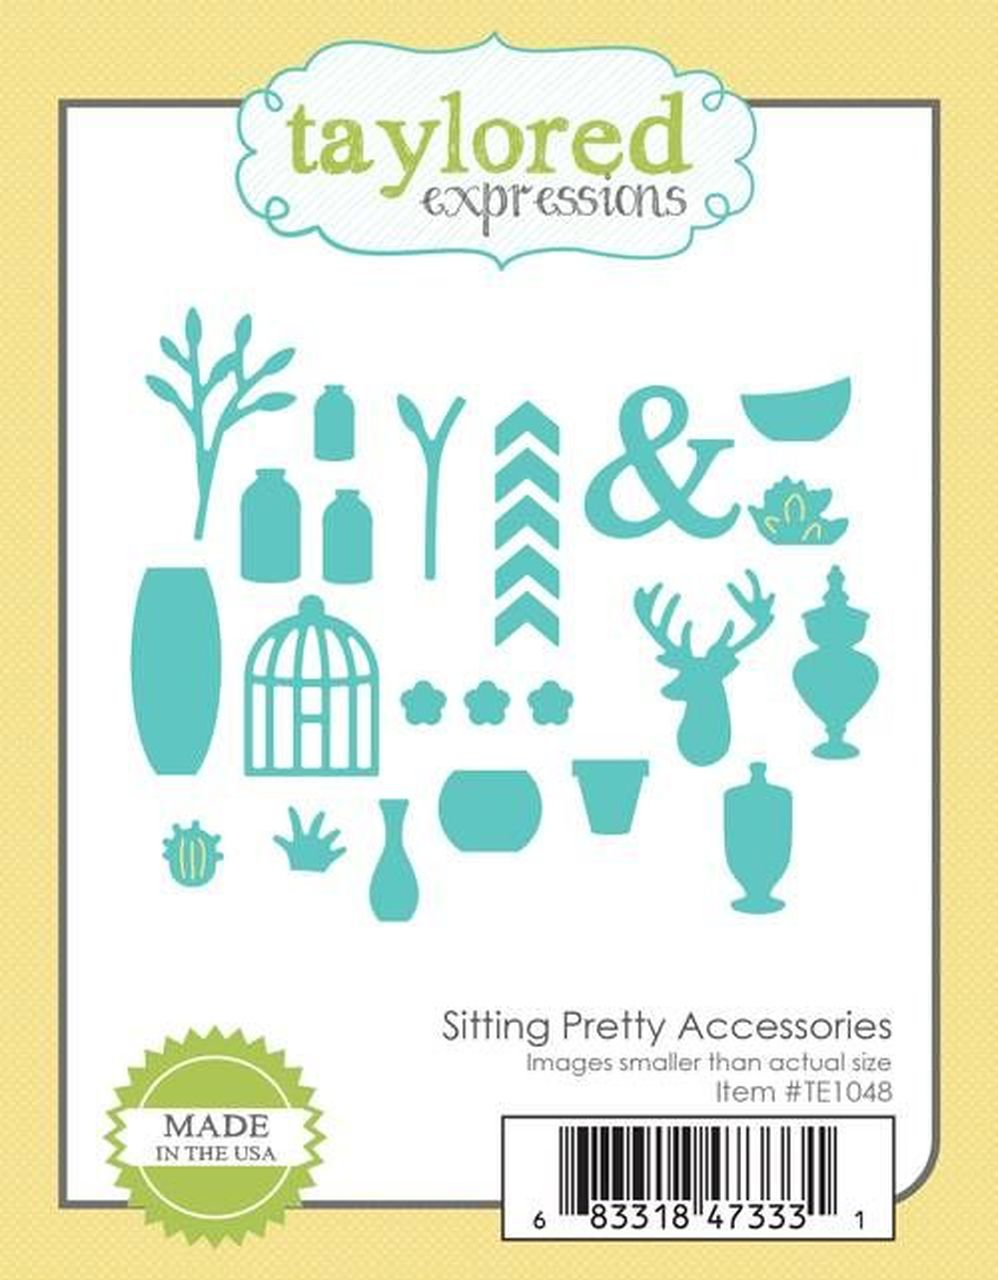 Taylored Expressions - Sitting Pretty Accessories Dies